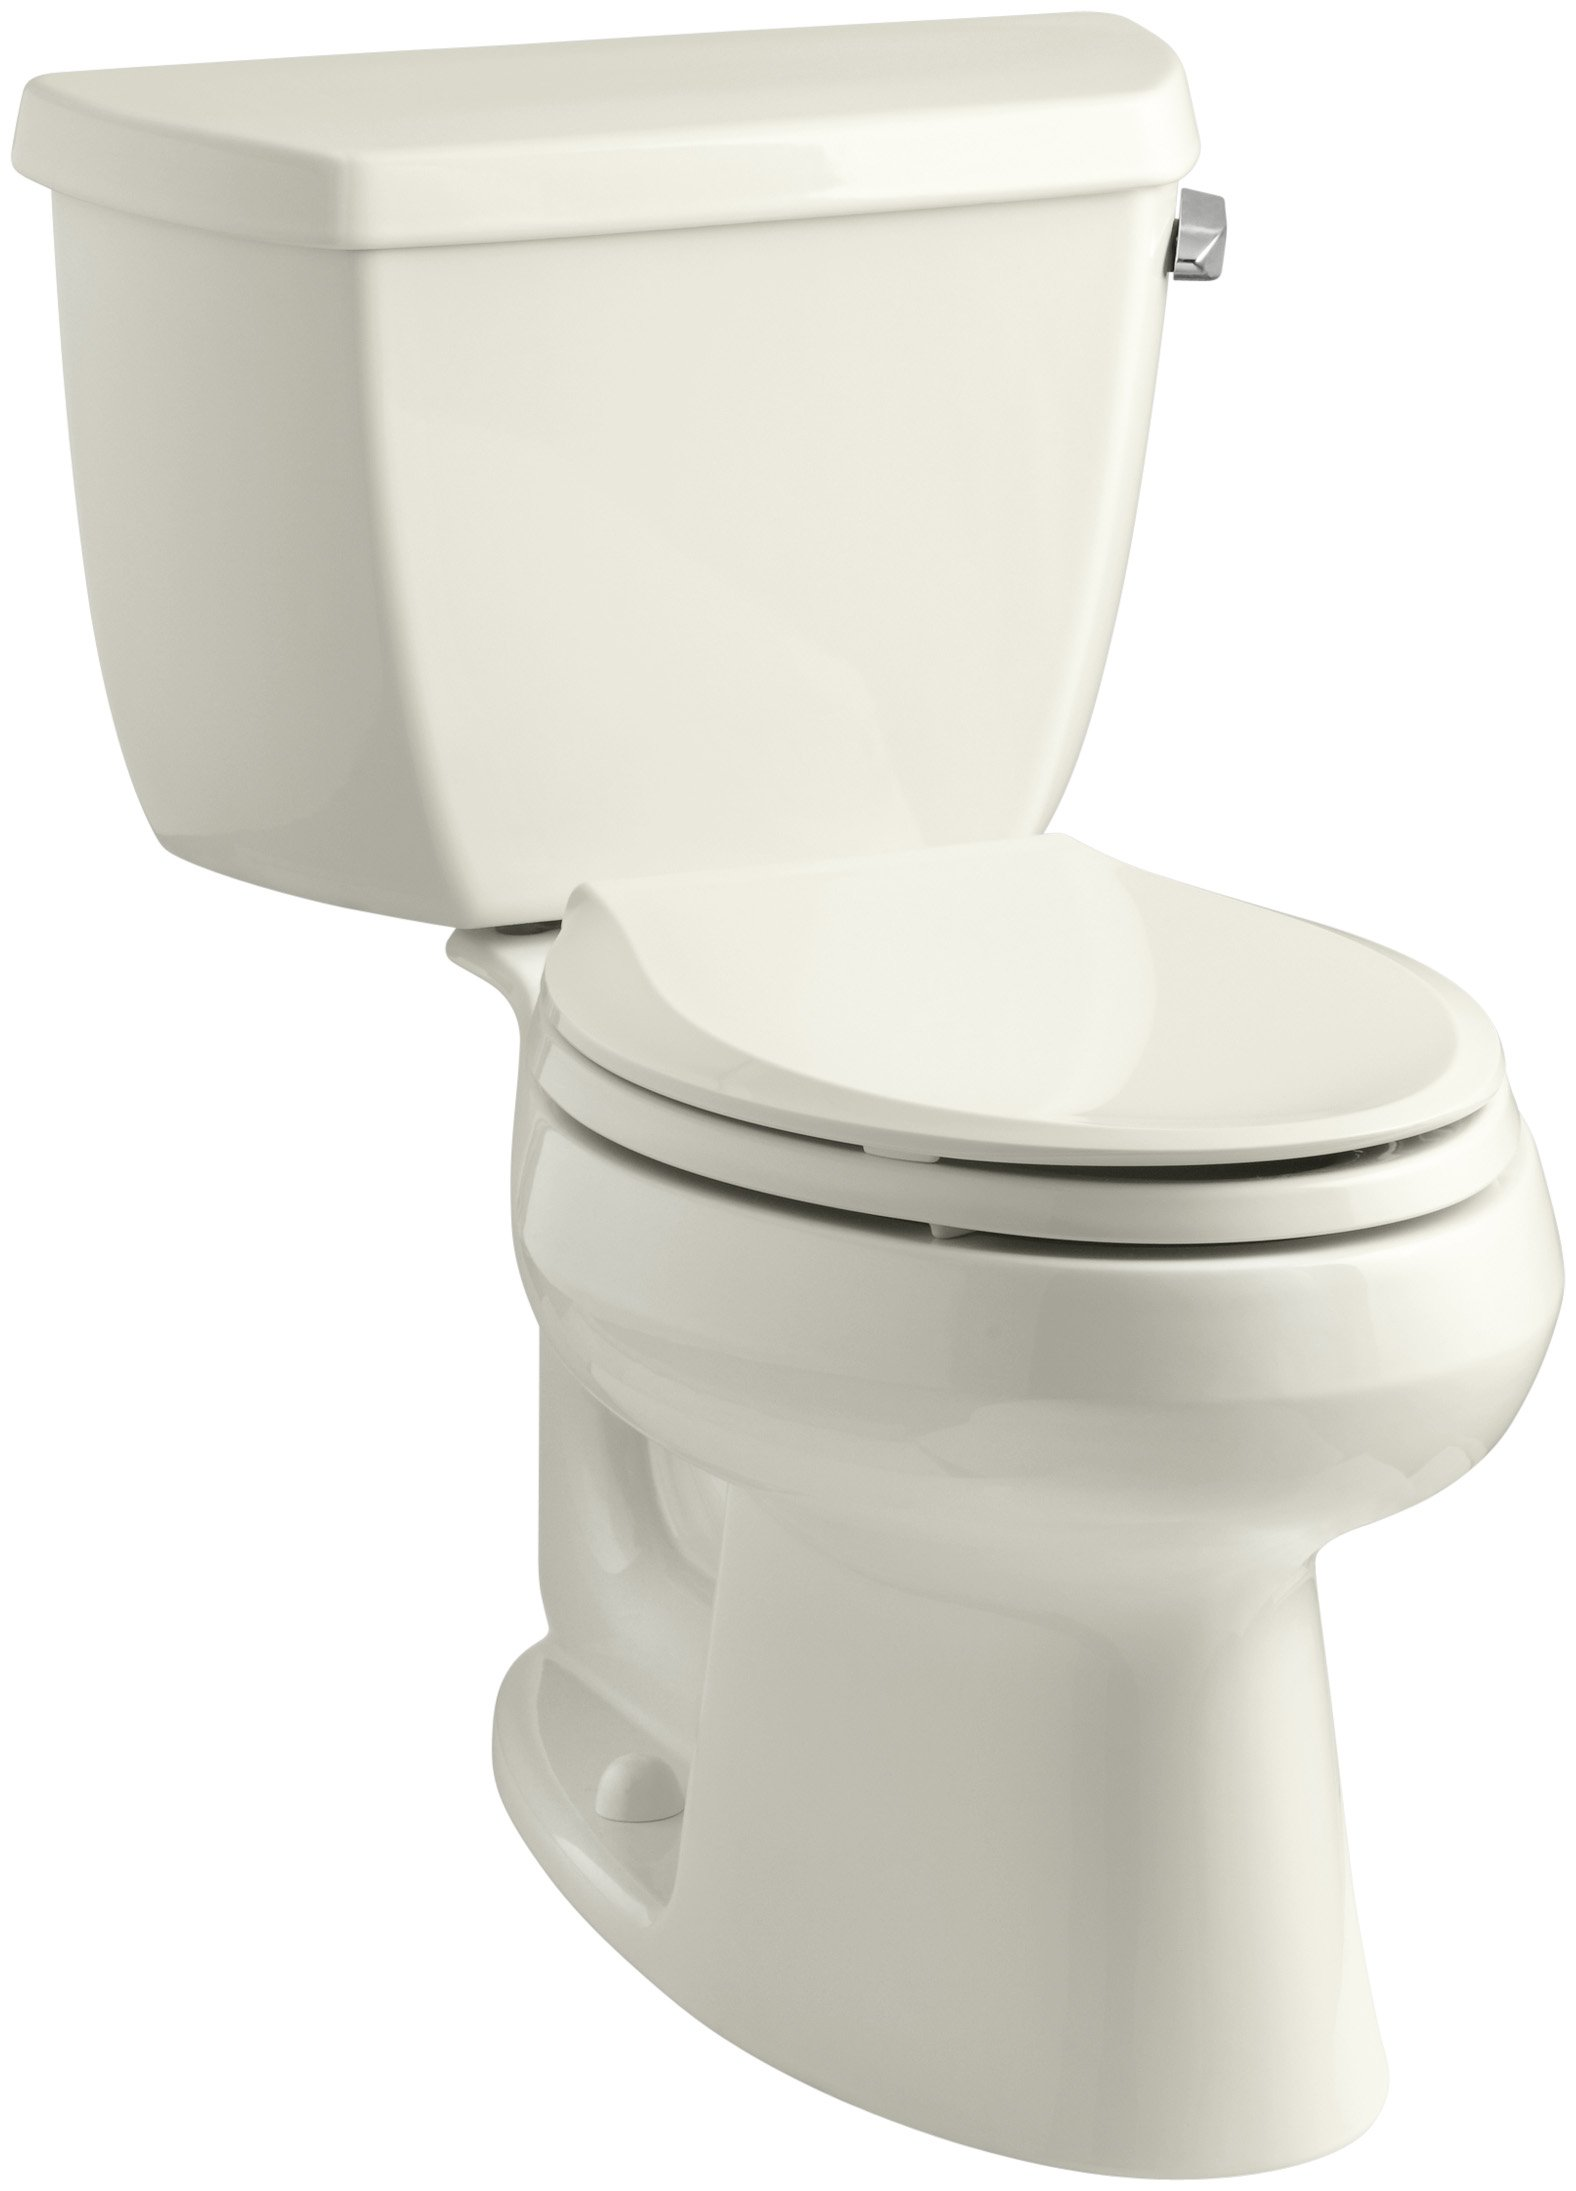 Kohler K-3575-RA-96 Wellworth Classic 1.28 gpf Elongated Toilet with Class Five Flushing Technology and Right-Hand Trip Lever, Biscuit by Kohler